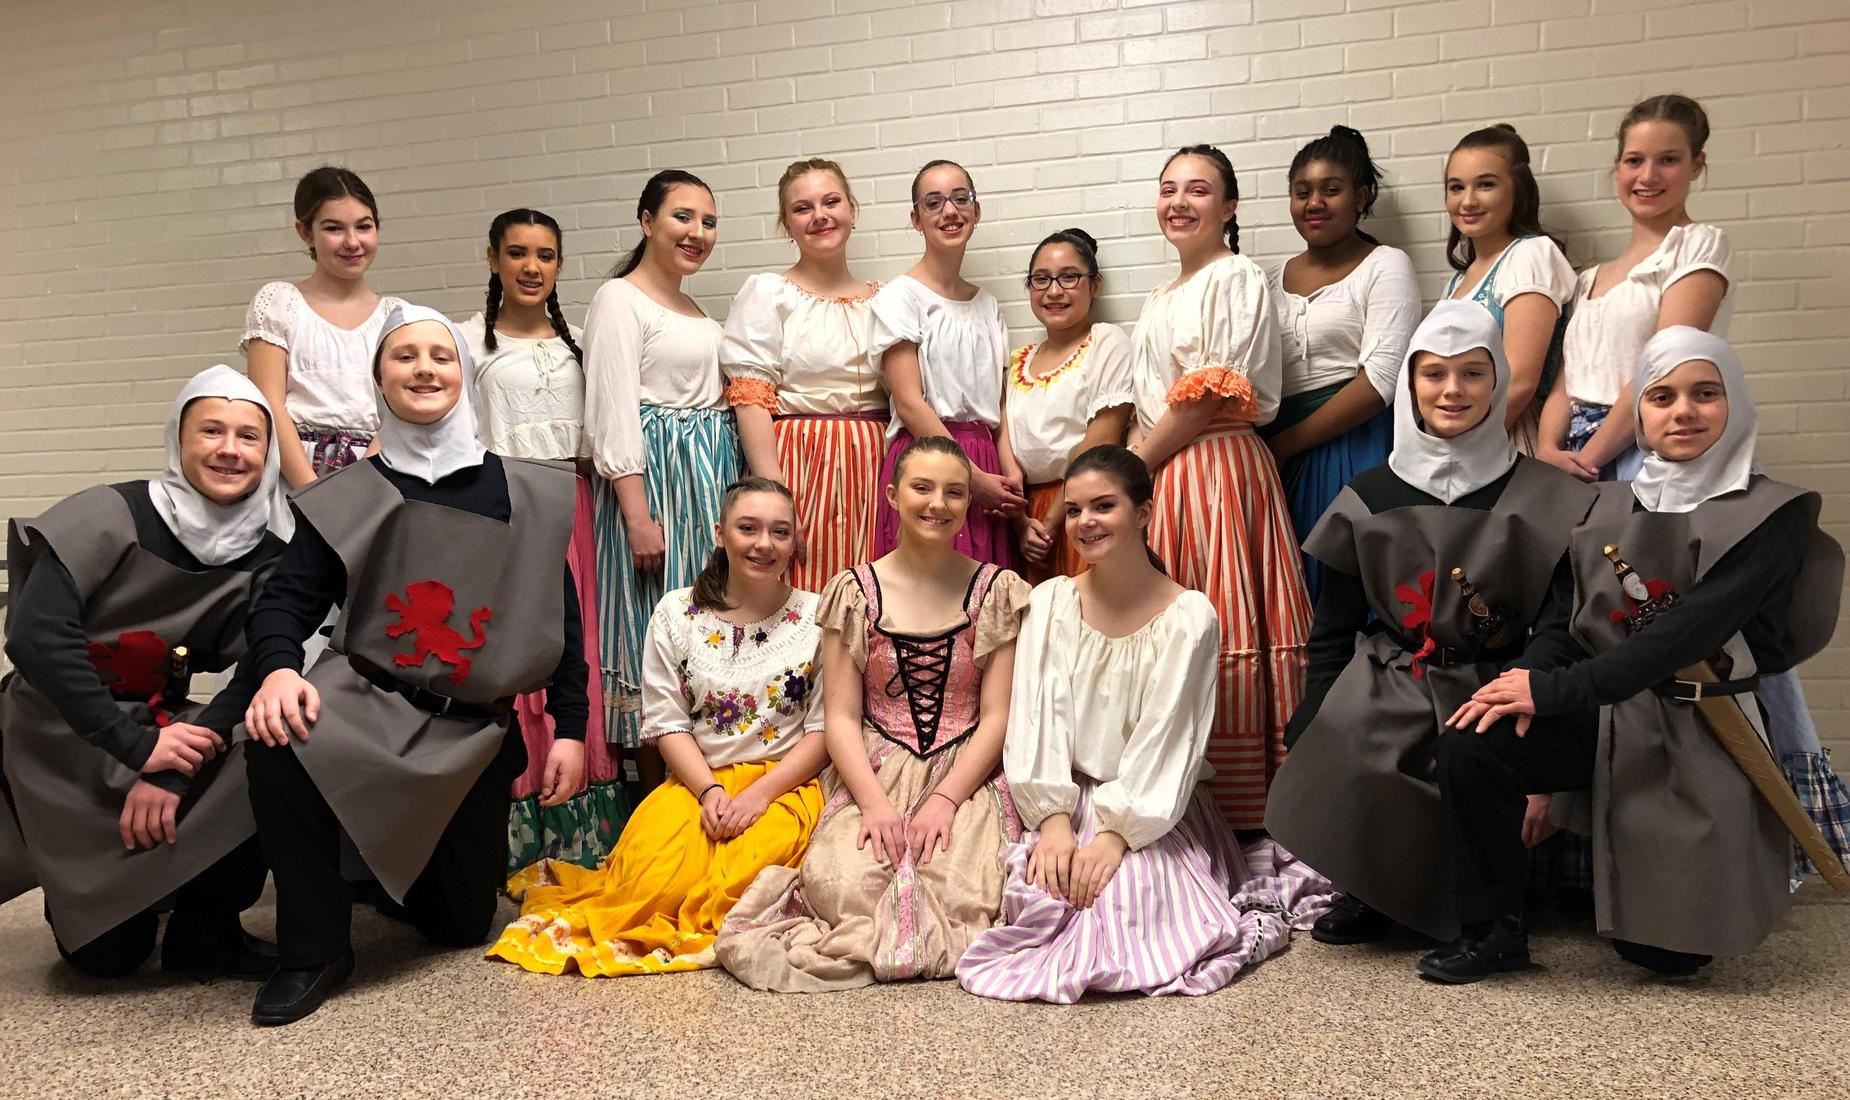 Middle School students, girls and boys, dressed up in costumes ready to perform in high school musical Cinderella.